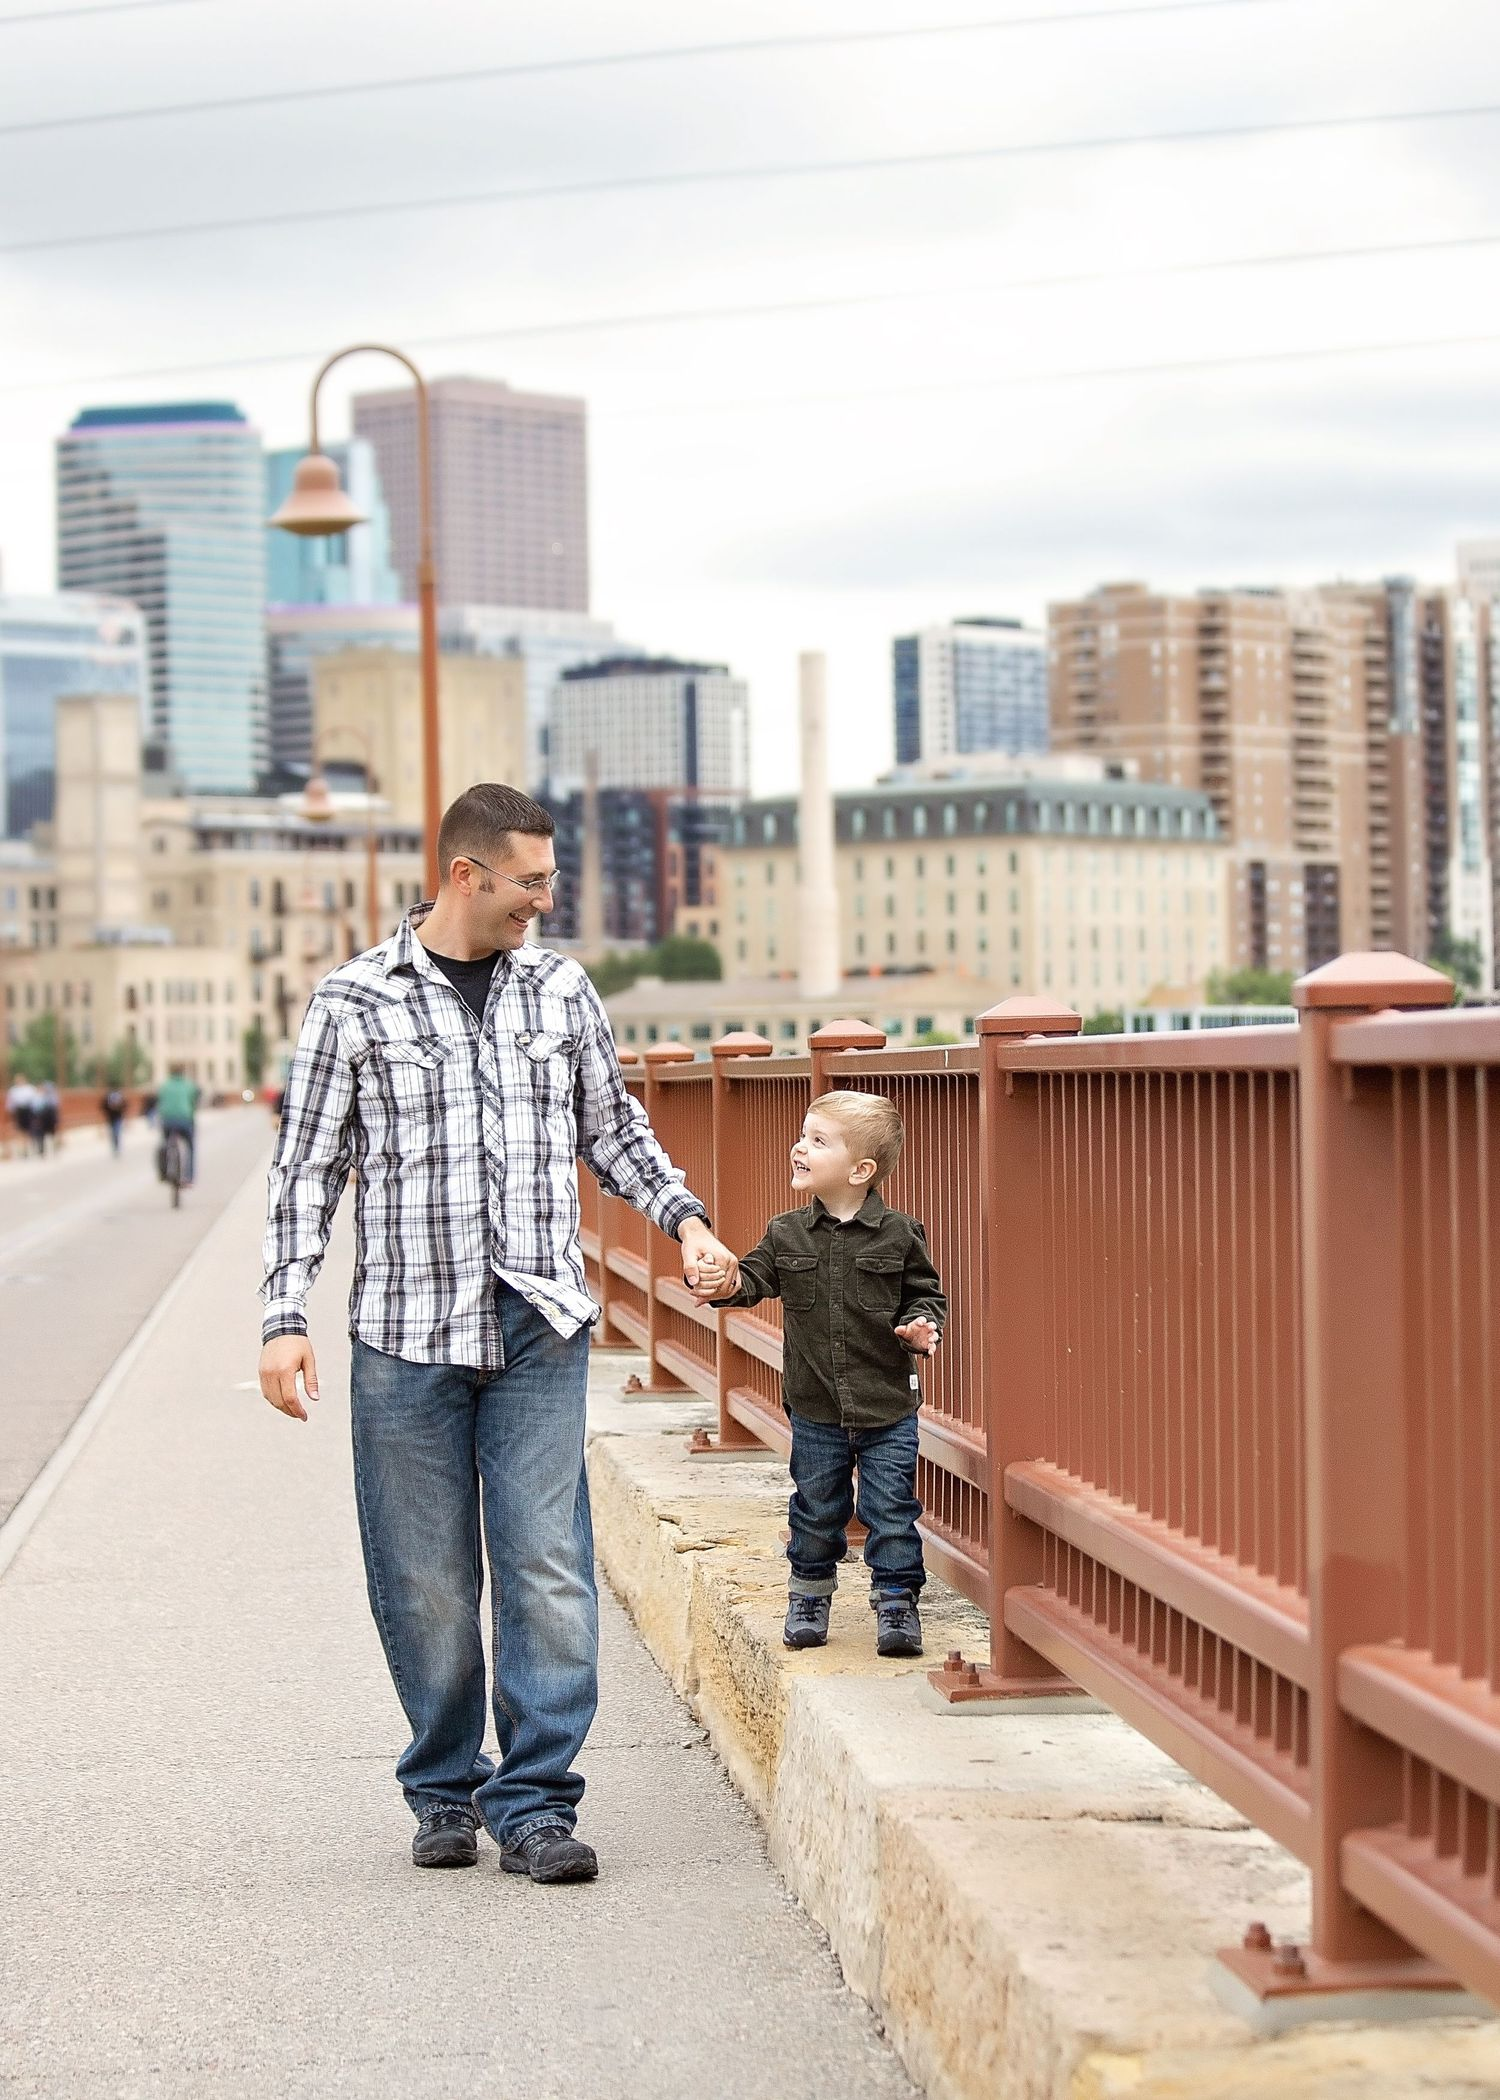 dad walking with son stone arch bridge minneapolis